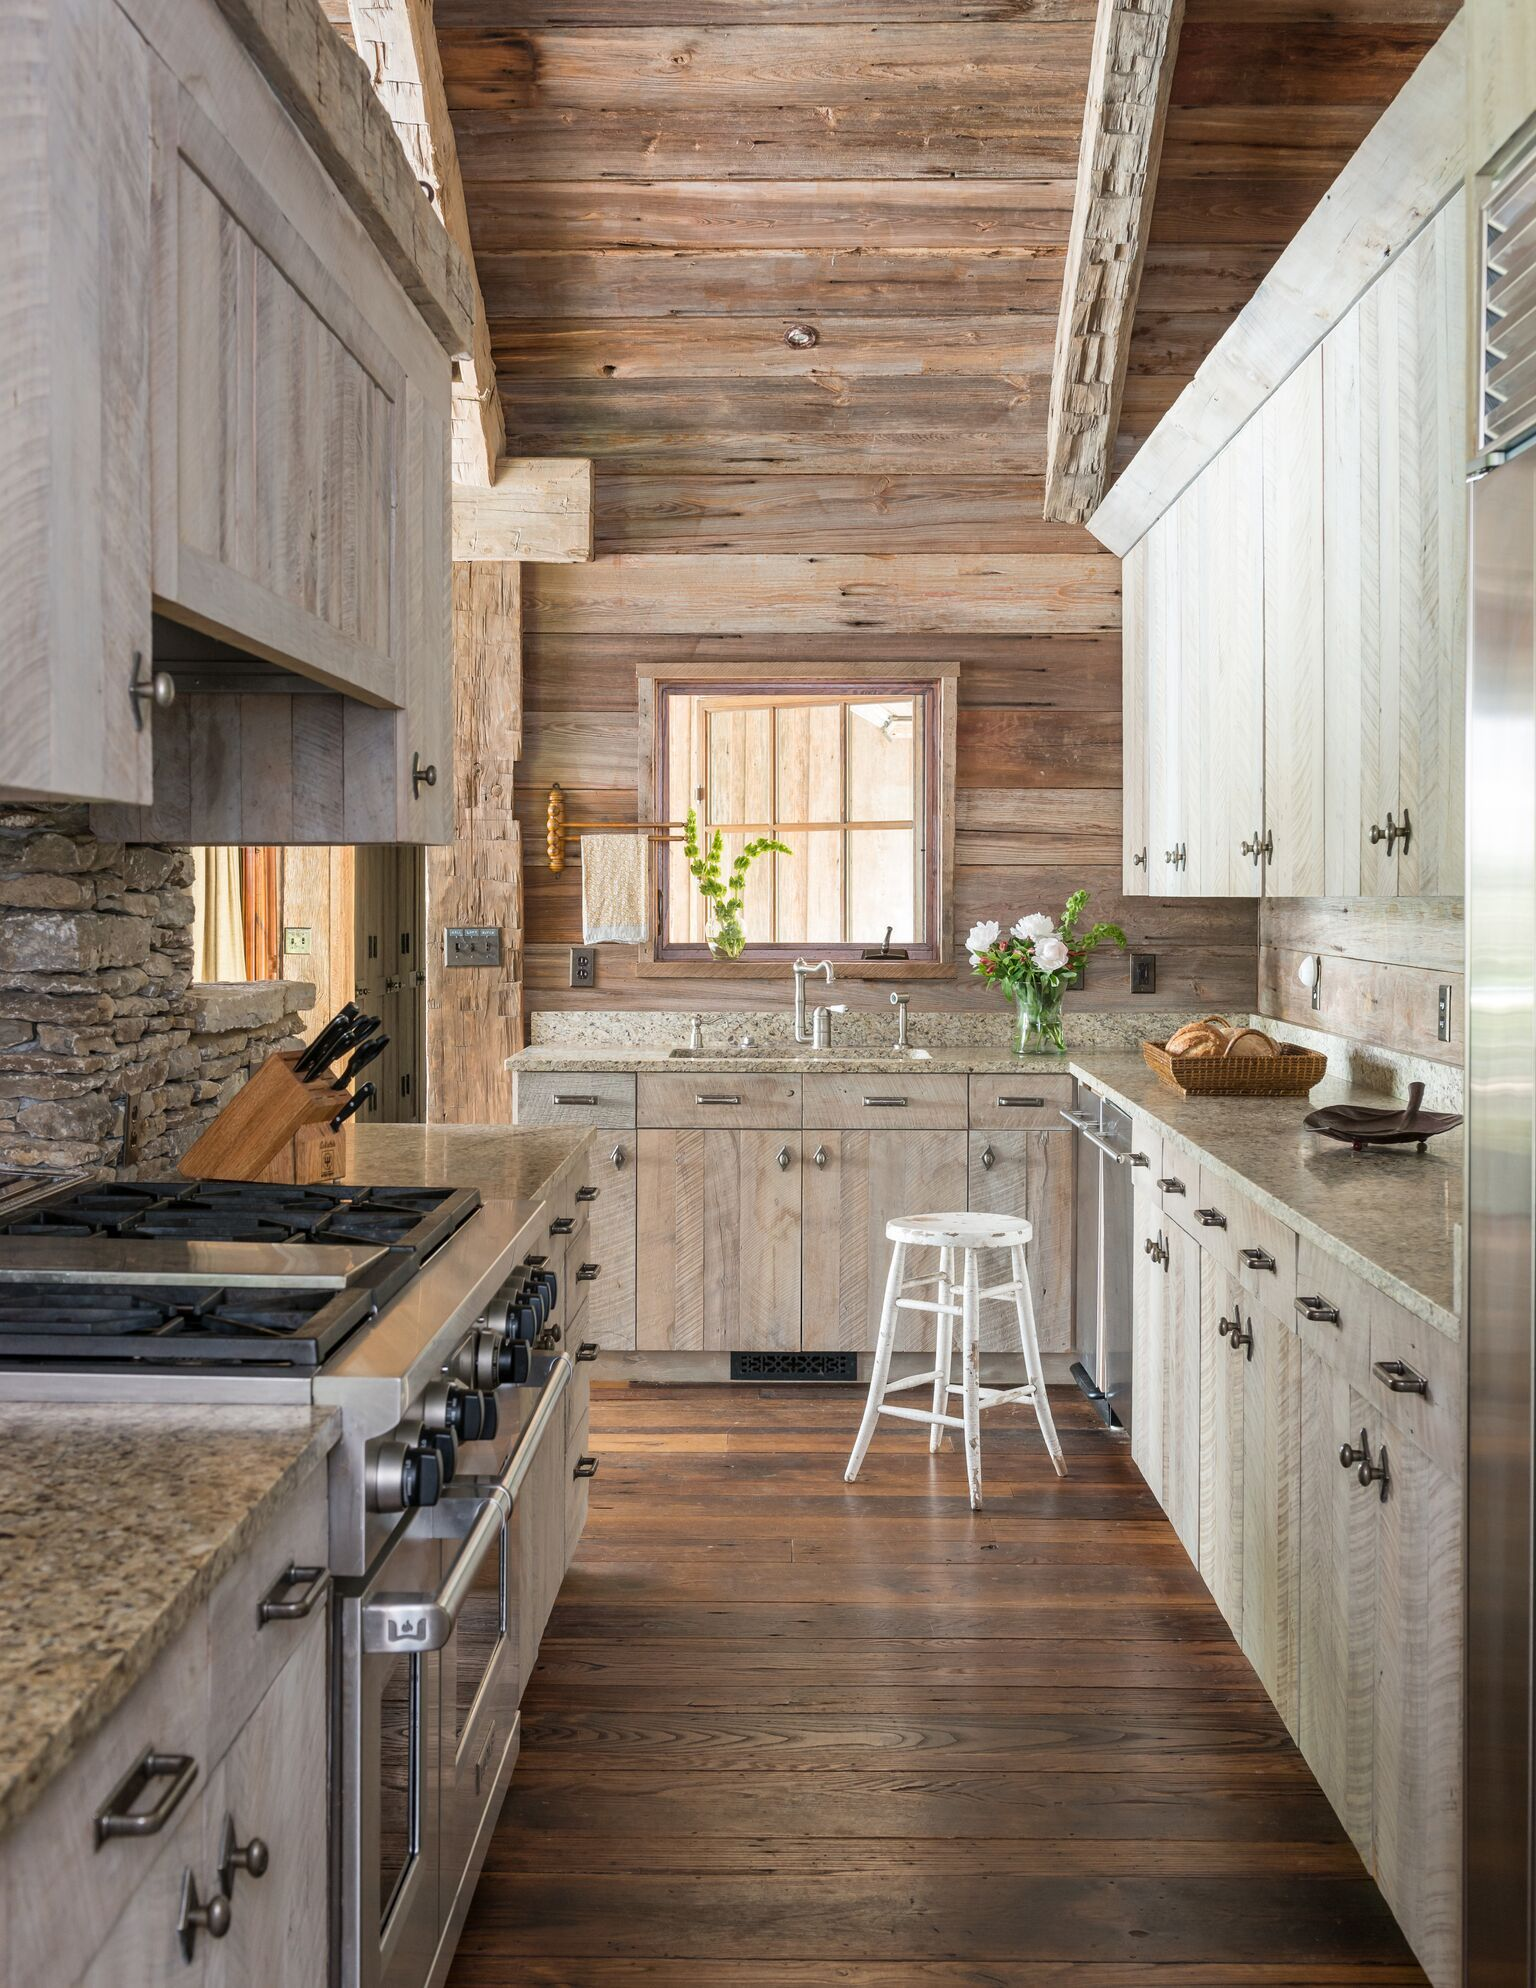 Superieur Reclaimed Barnwood And Granite Countertops Blend Smoothly In This Brightly  Lit Kitchen.